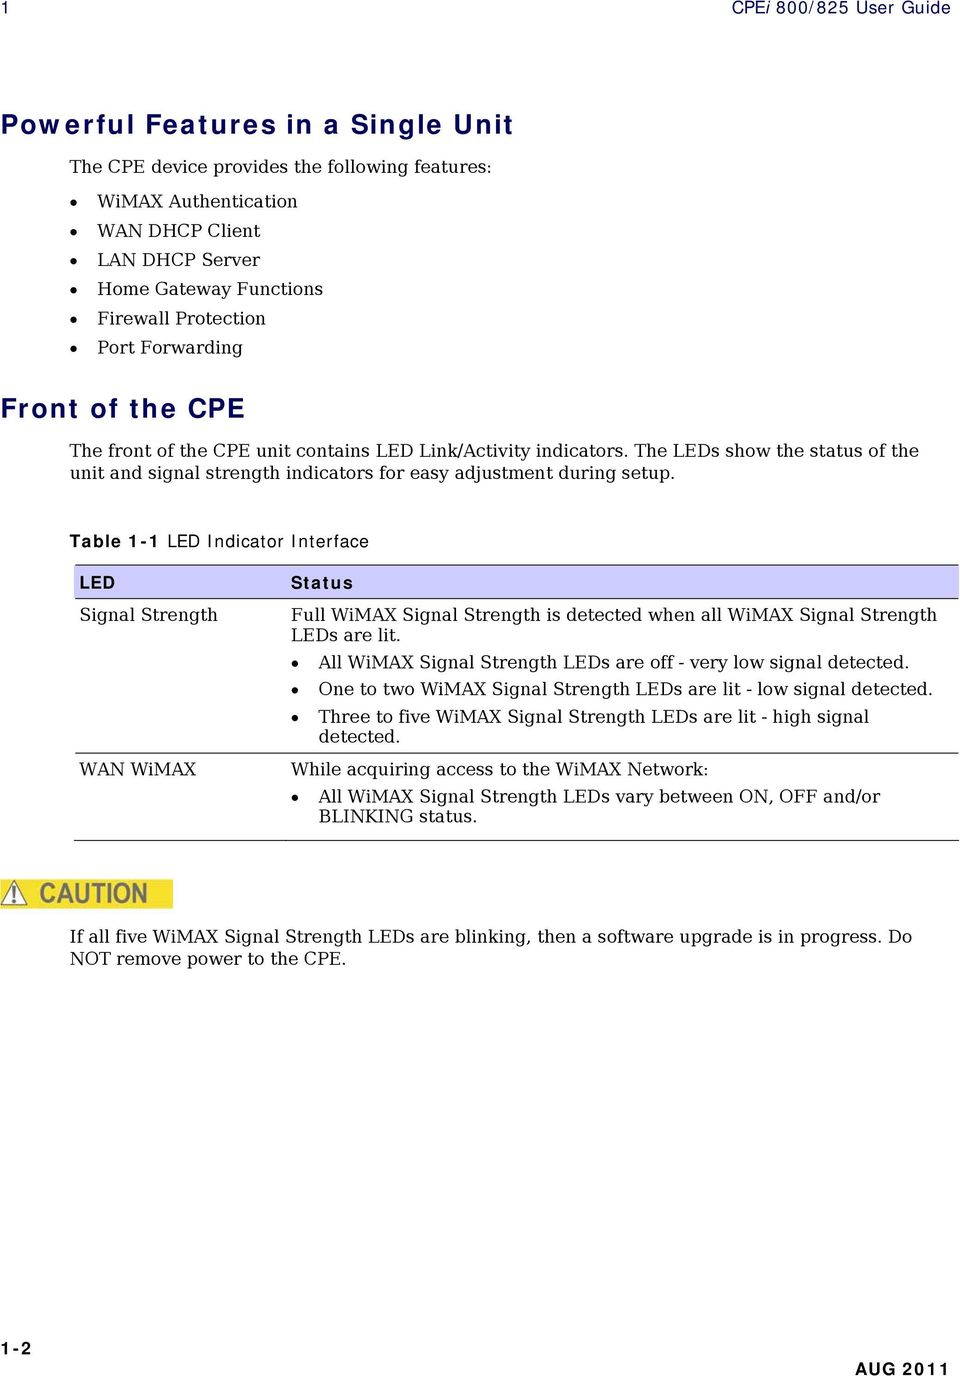 The LEDs show the status of the unit and signal strength indicators for easy adjustment during setup.